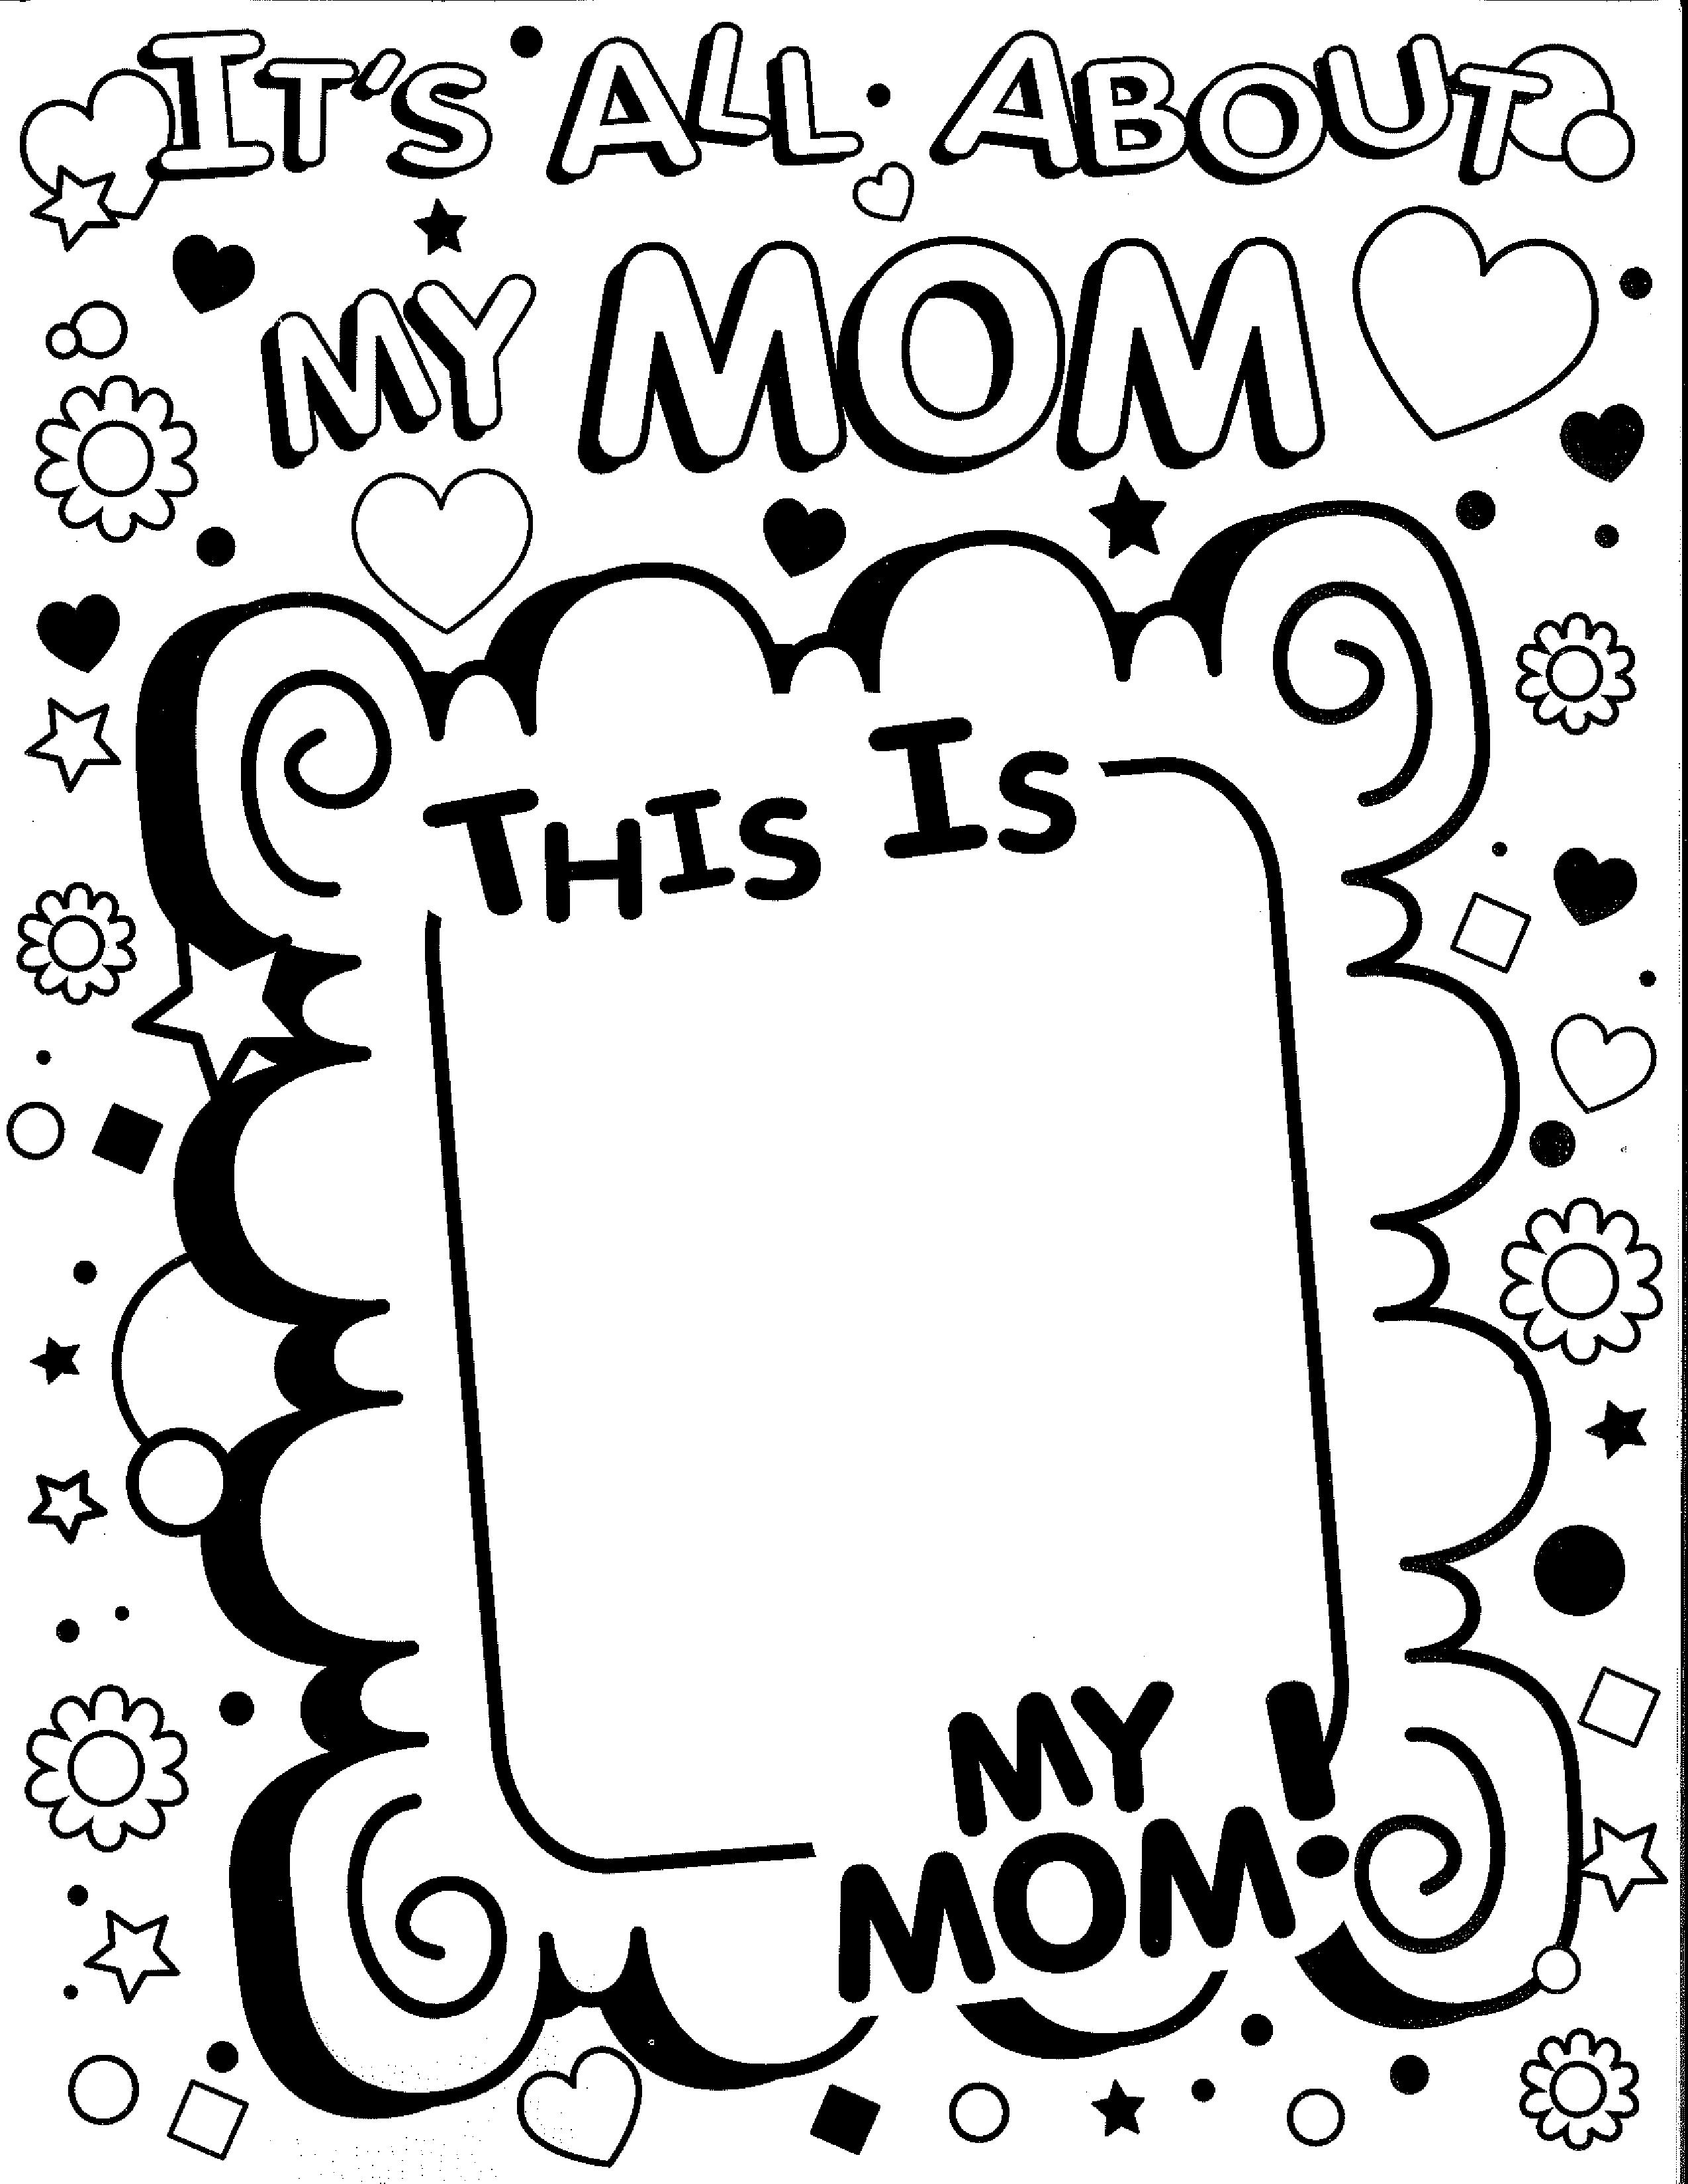 All About Mom-page-001.jpg